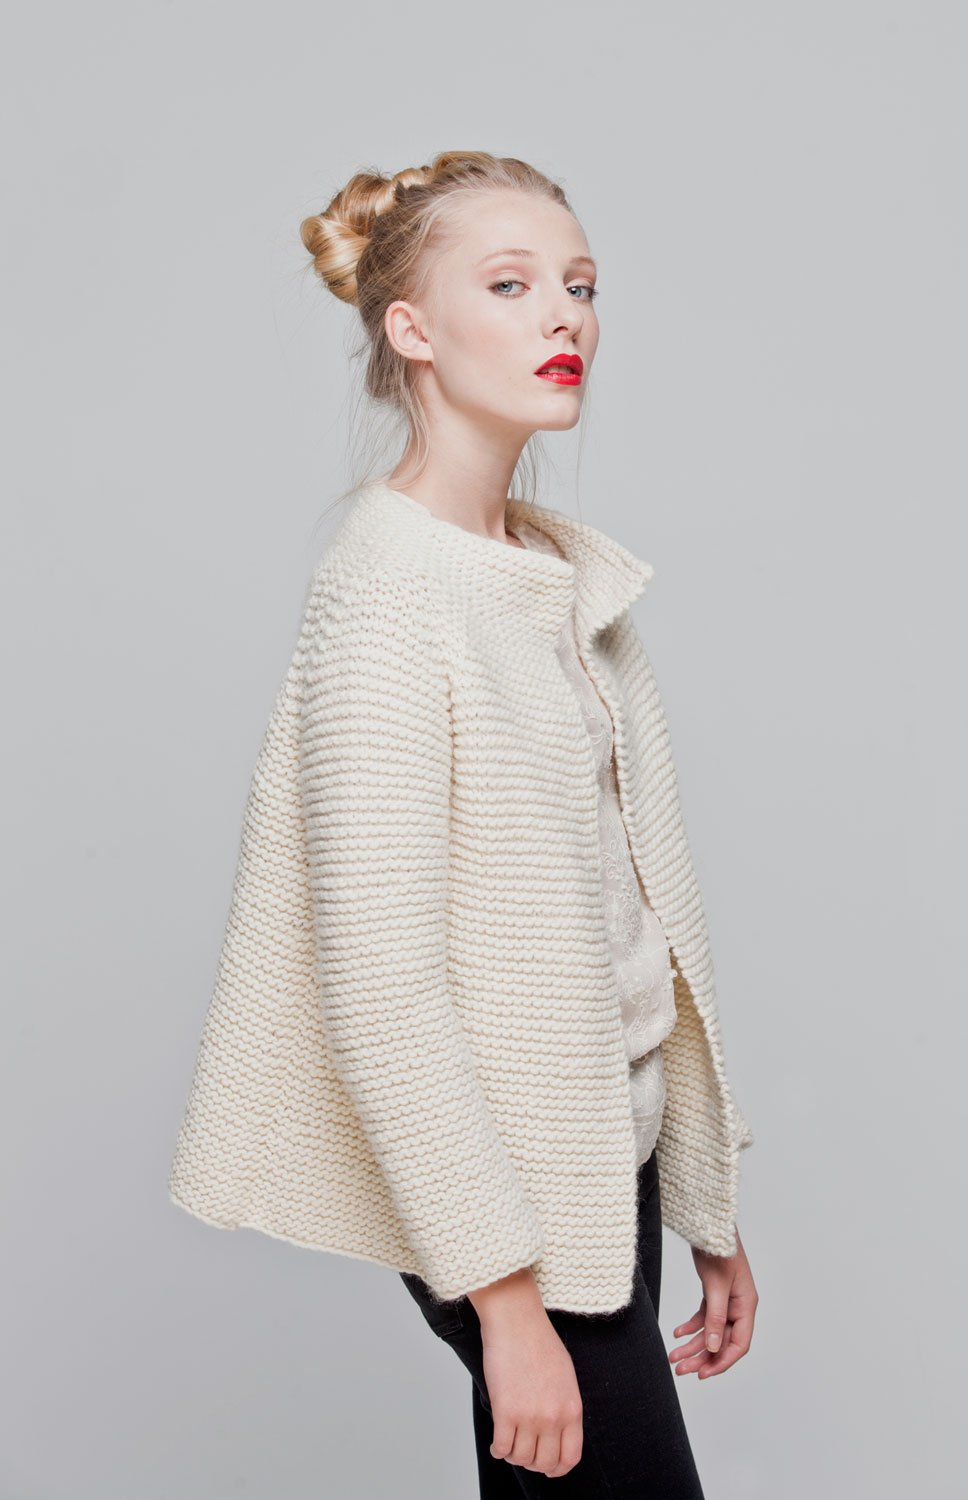 We are Knitters - Intermediate Level Knitting Kit - Martina Cardigan by We Are Knitters (Image #3)